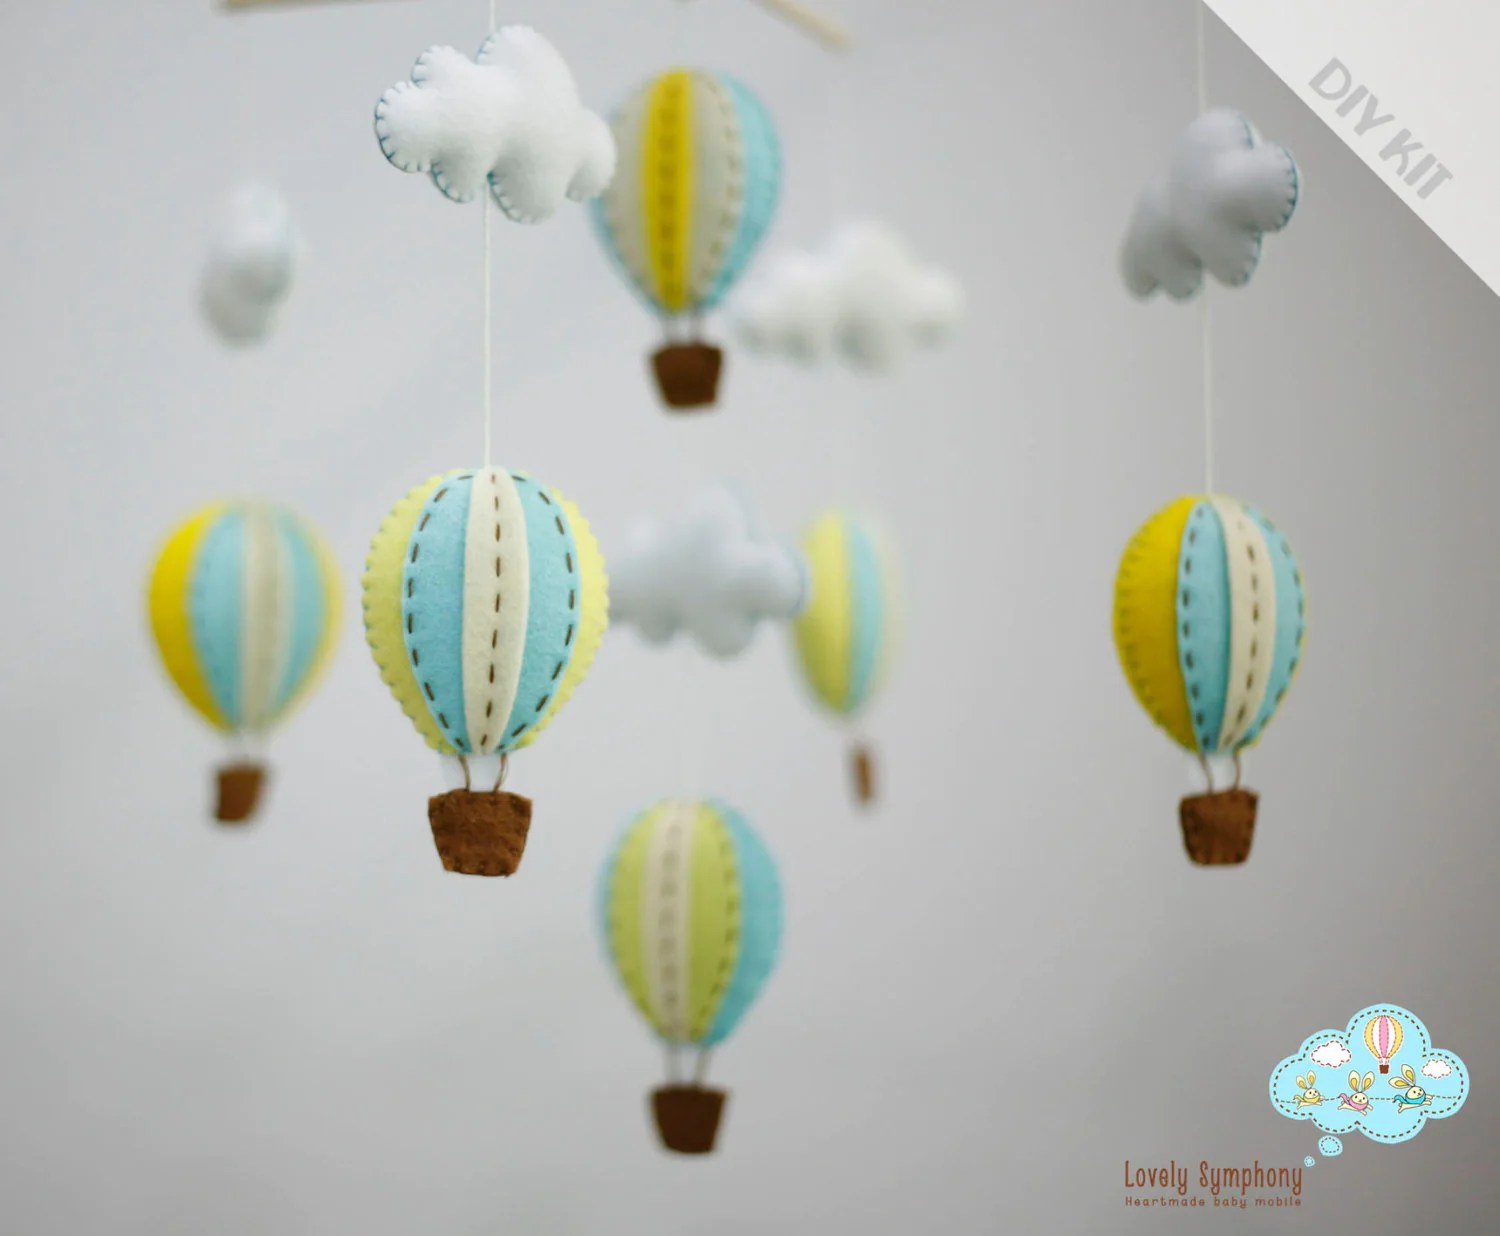 Admirable Diy Turquoise Yellow Baby Mobile Kit Diy Baby Crib Mobile Diy Baby Mobile Crib Attachment Diy Baby Mobile Arm inspiration Diy Baby Mobile